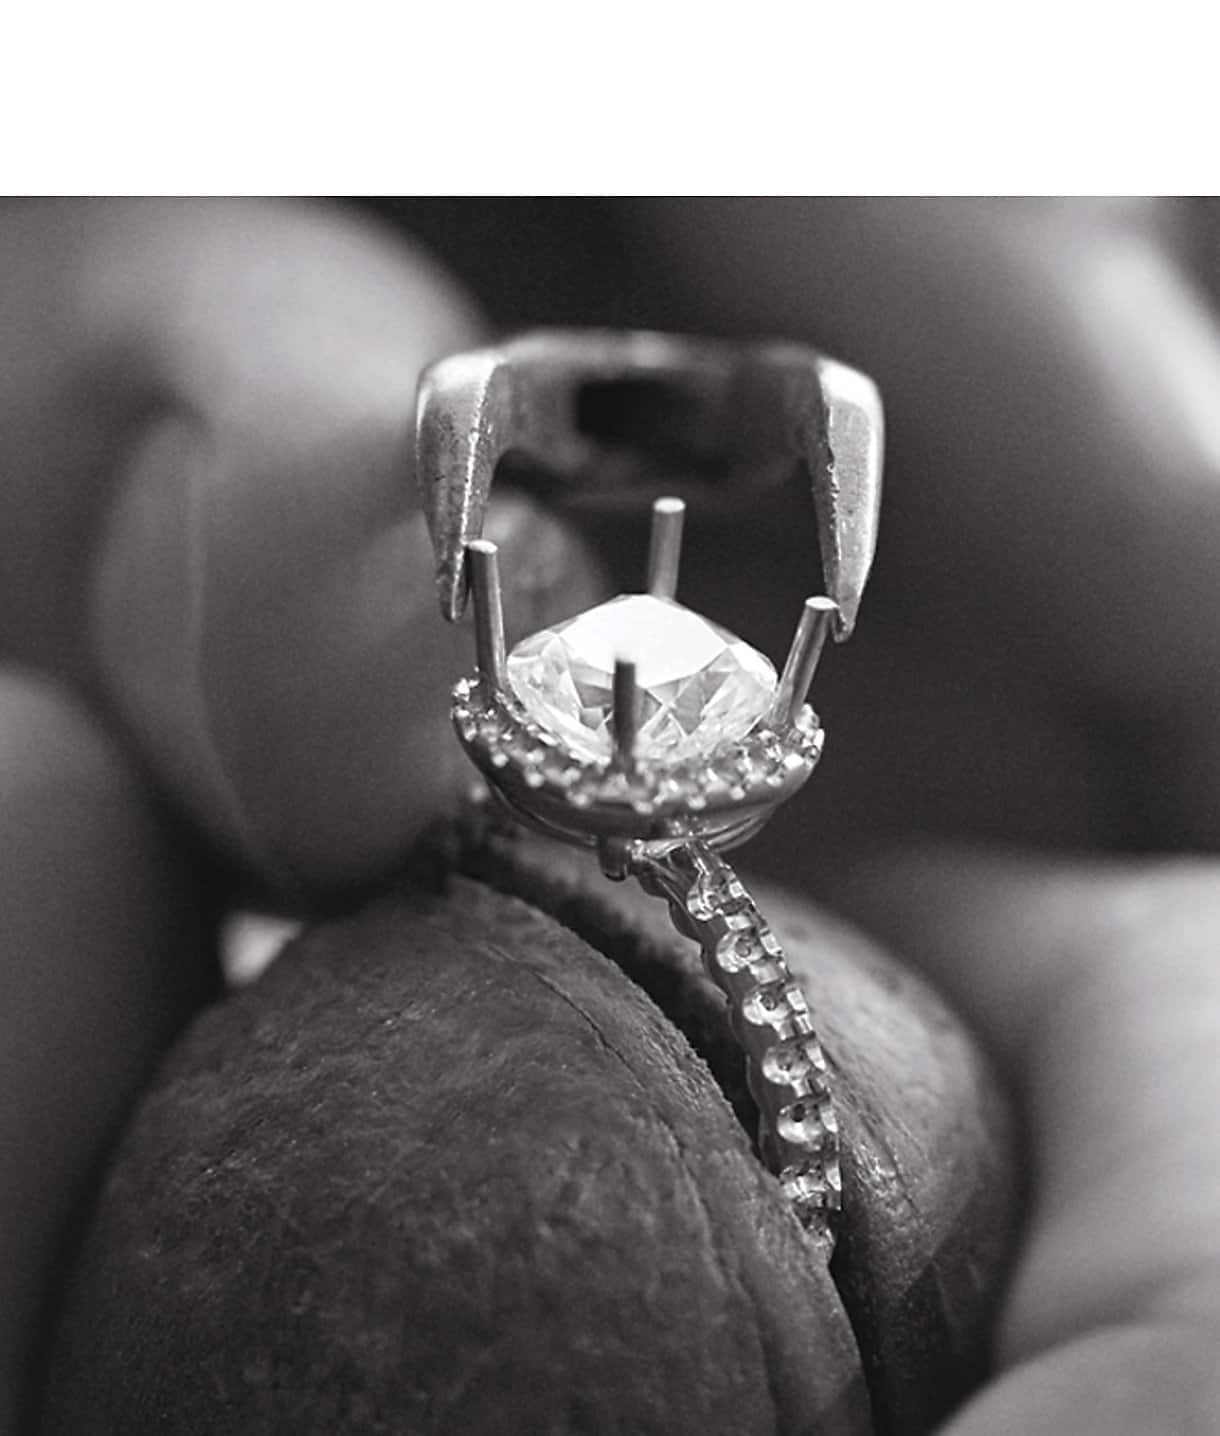 A diamond engagement ring in the process of being crafted